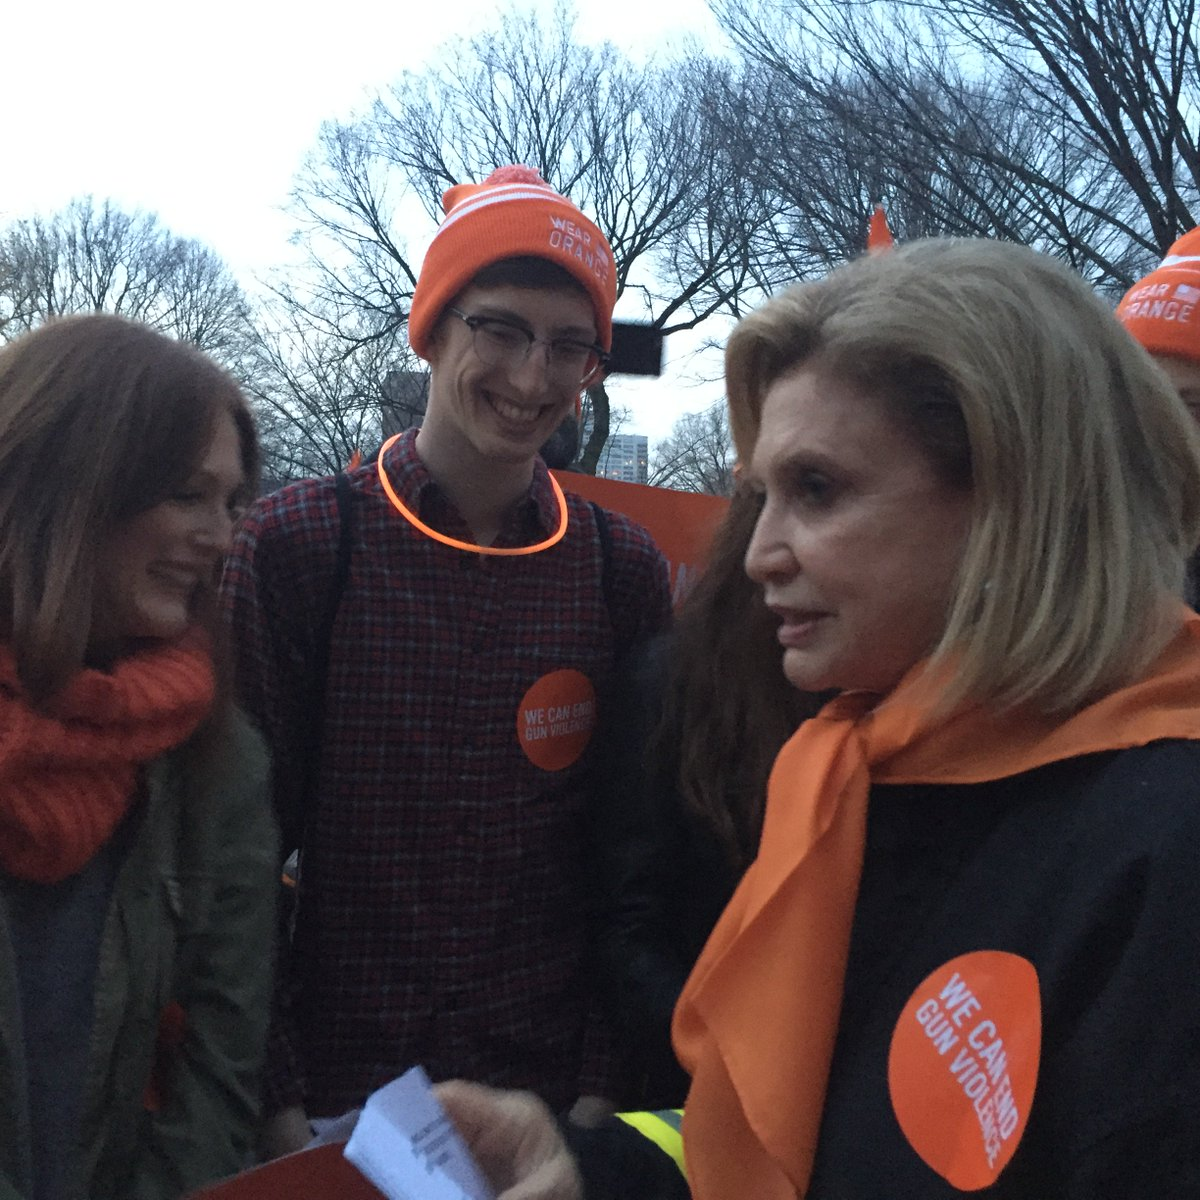 Earlier today I joined w/ @_juliannemoore  at @MomsDemand @Everytown #EndGunViolence rally https://t.co/XQp56f4G4I